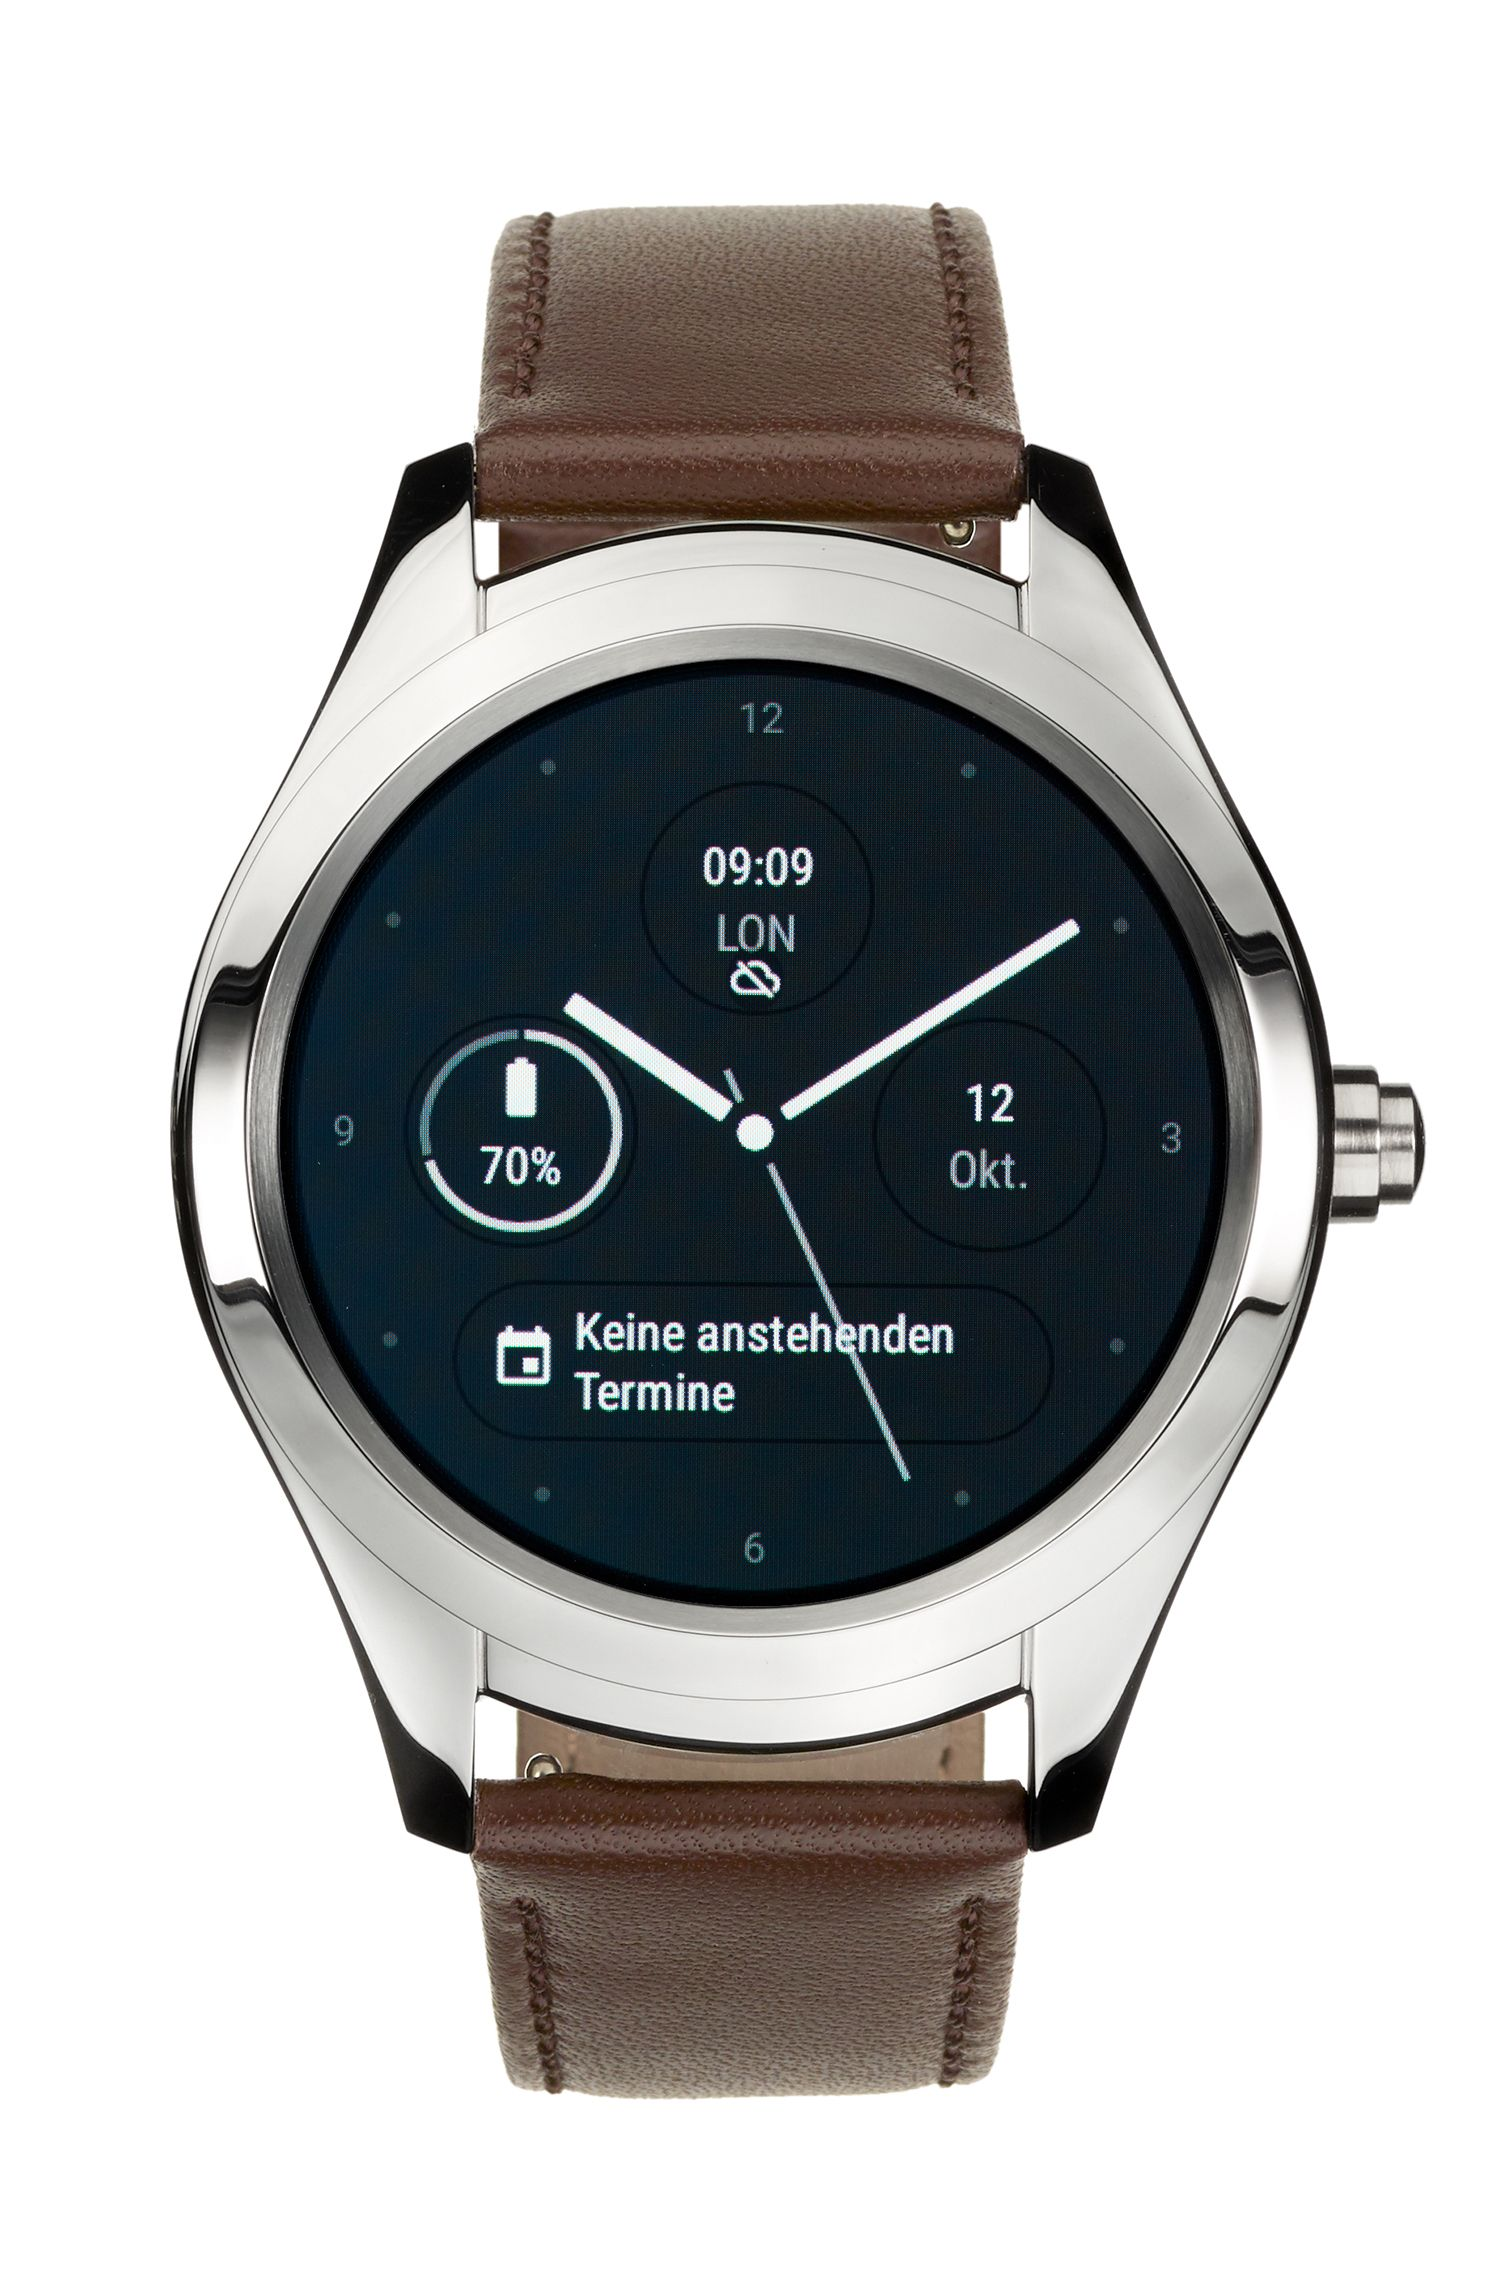 Montre intelligente tactile personnalisable en acier inoxydable, Marron